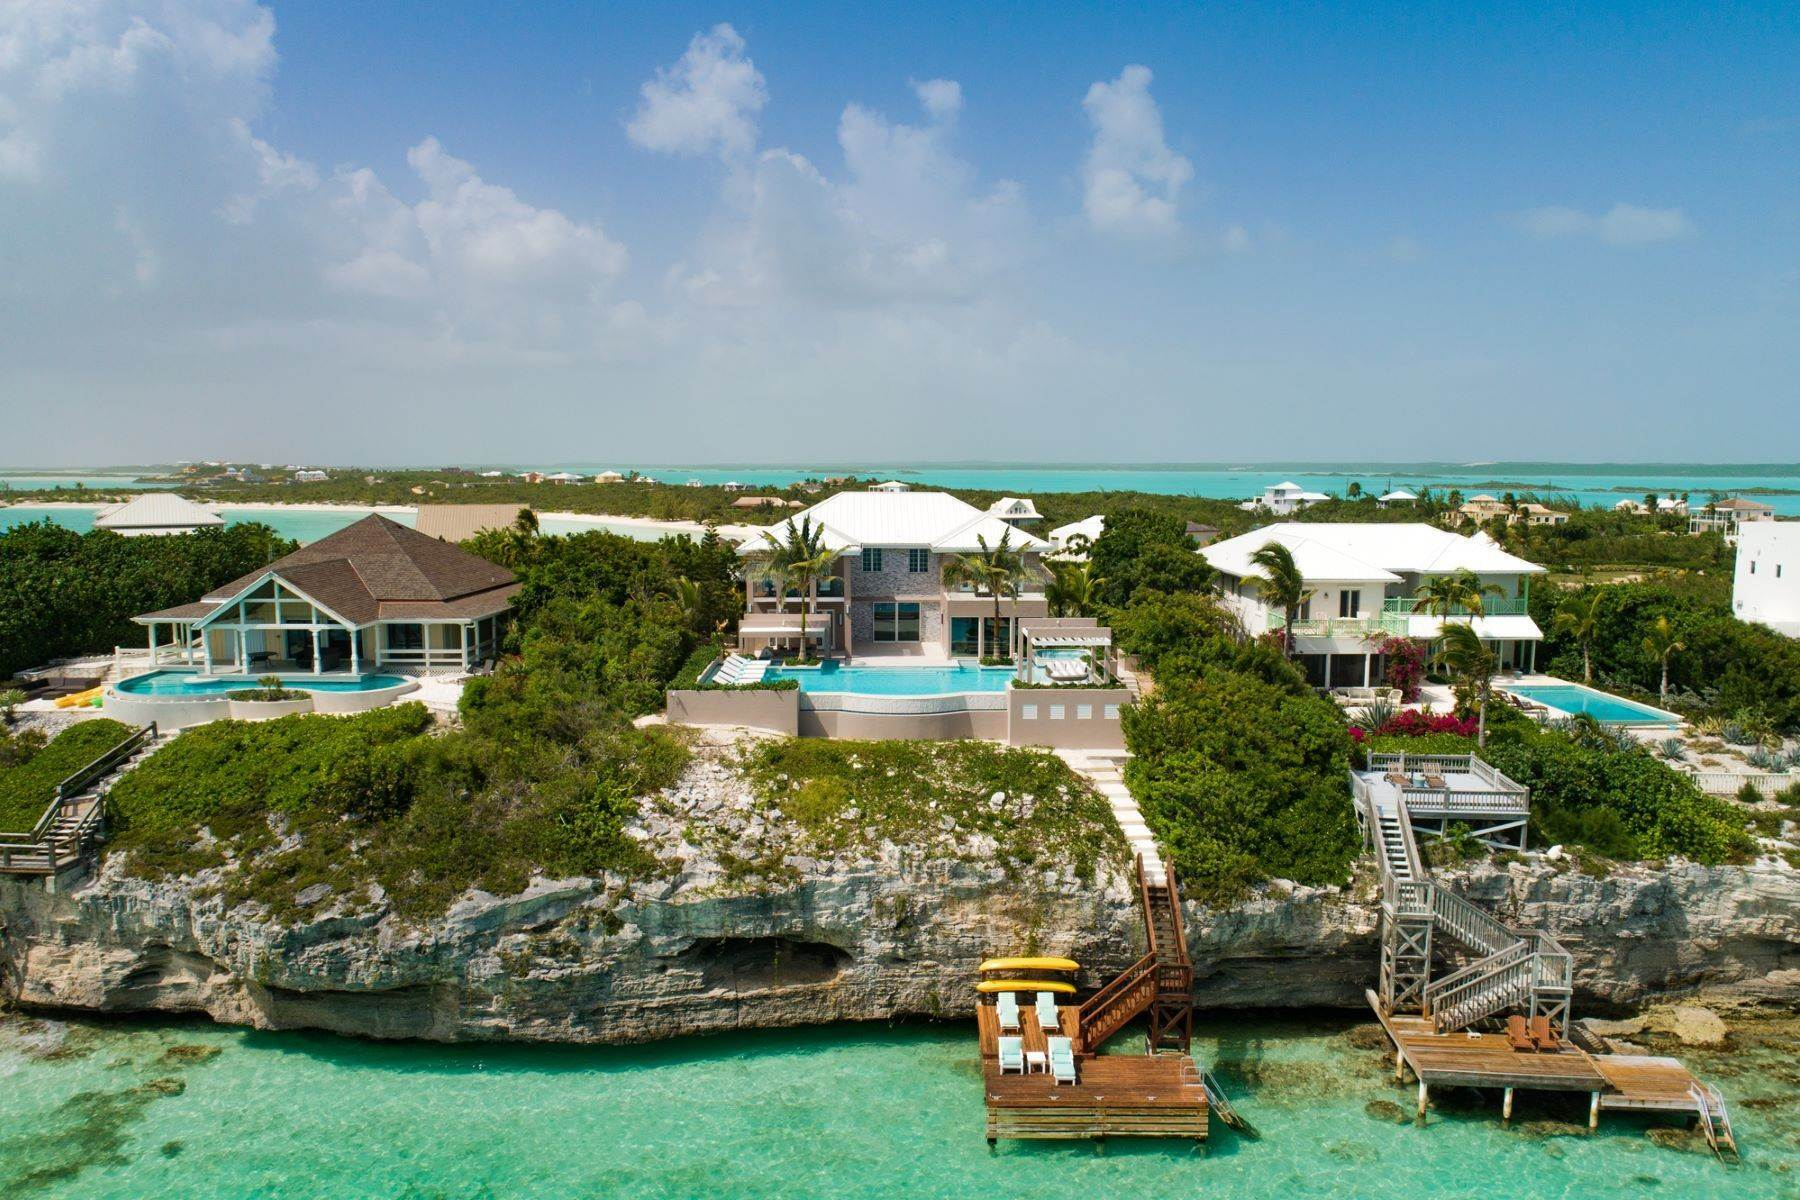 Single Family Homes for Sale at Villa Lucas Sapodilla Bay, Providenciales Turks And Caicos Islands